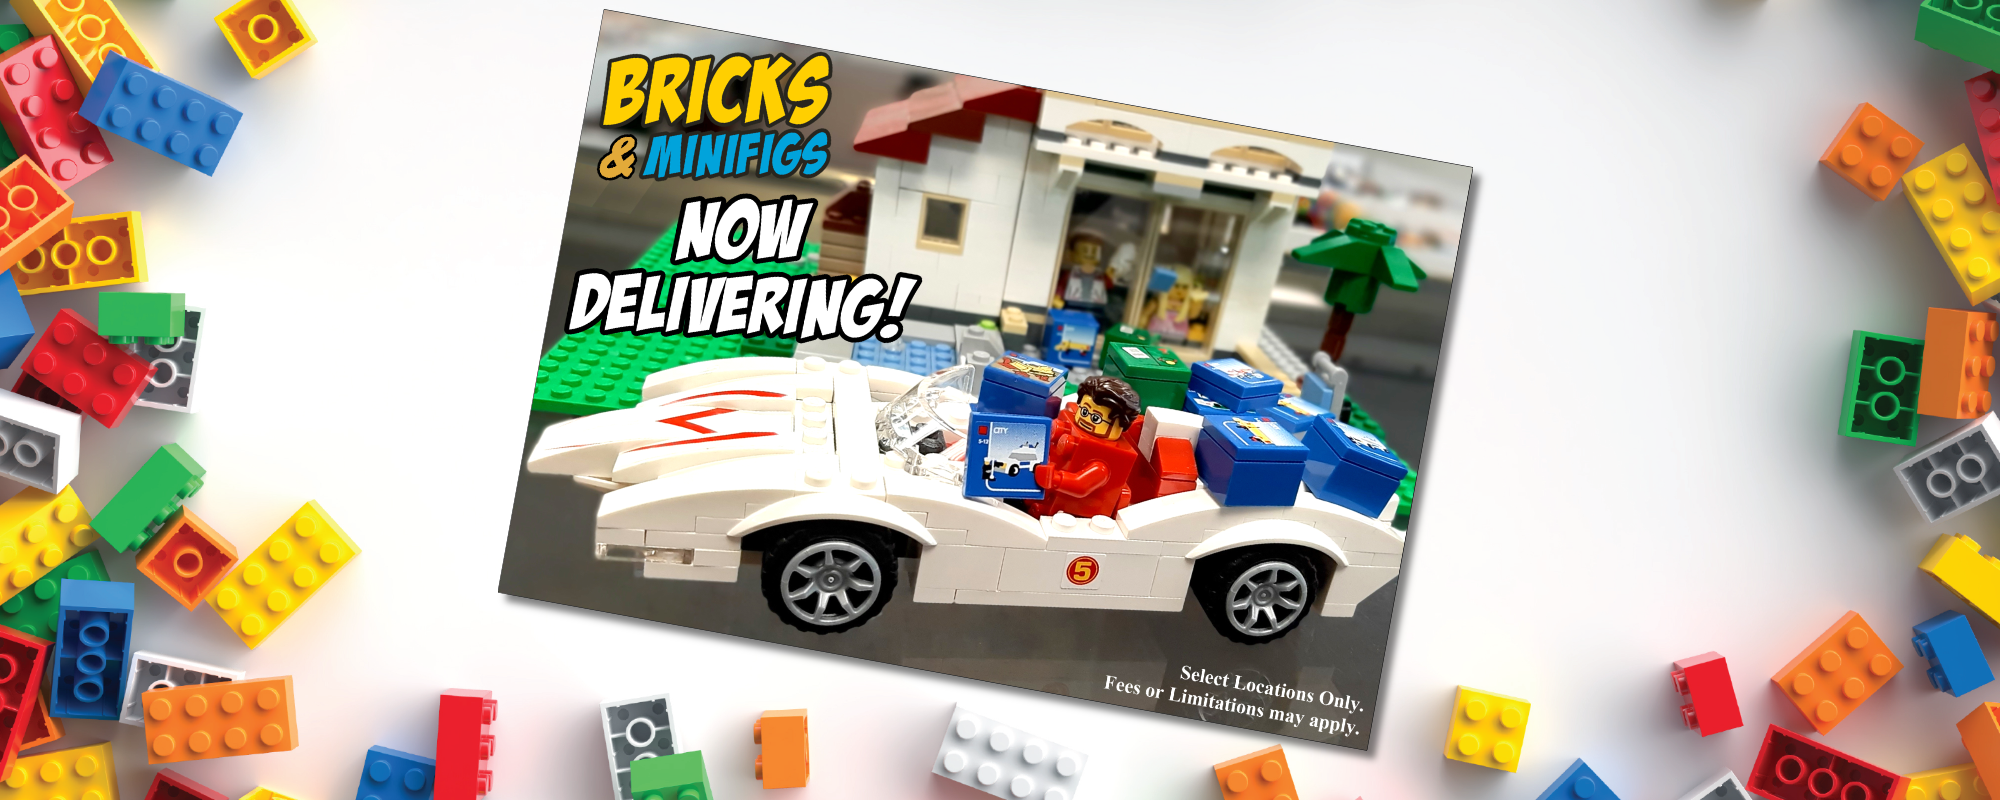 Bricks and Minifigs now delivering!